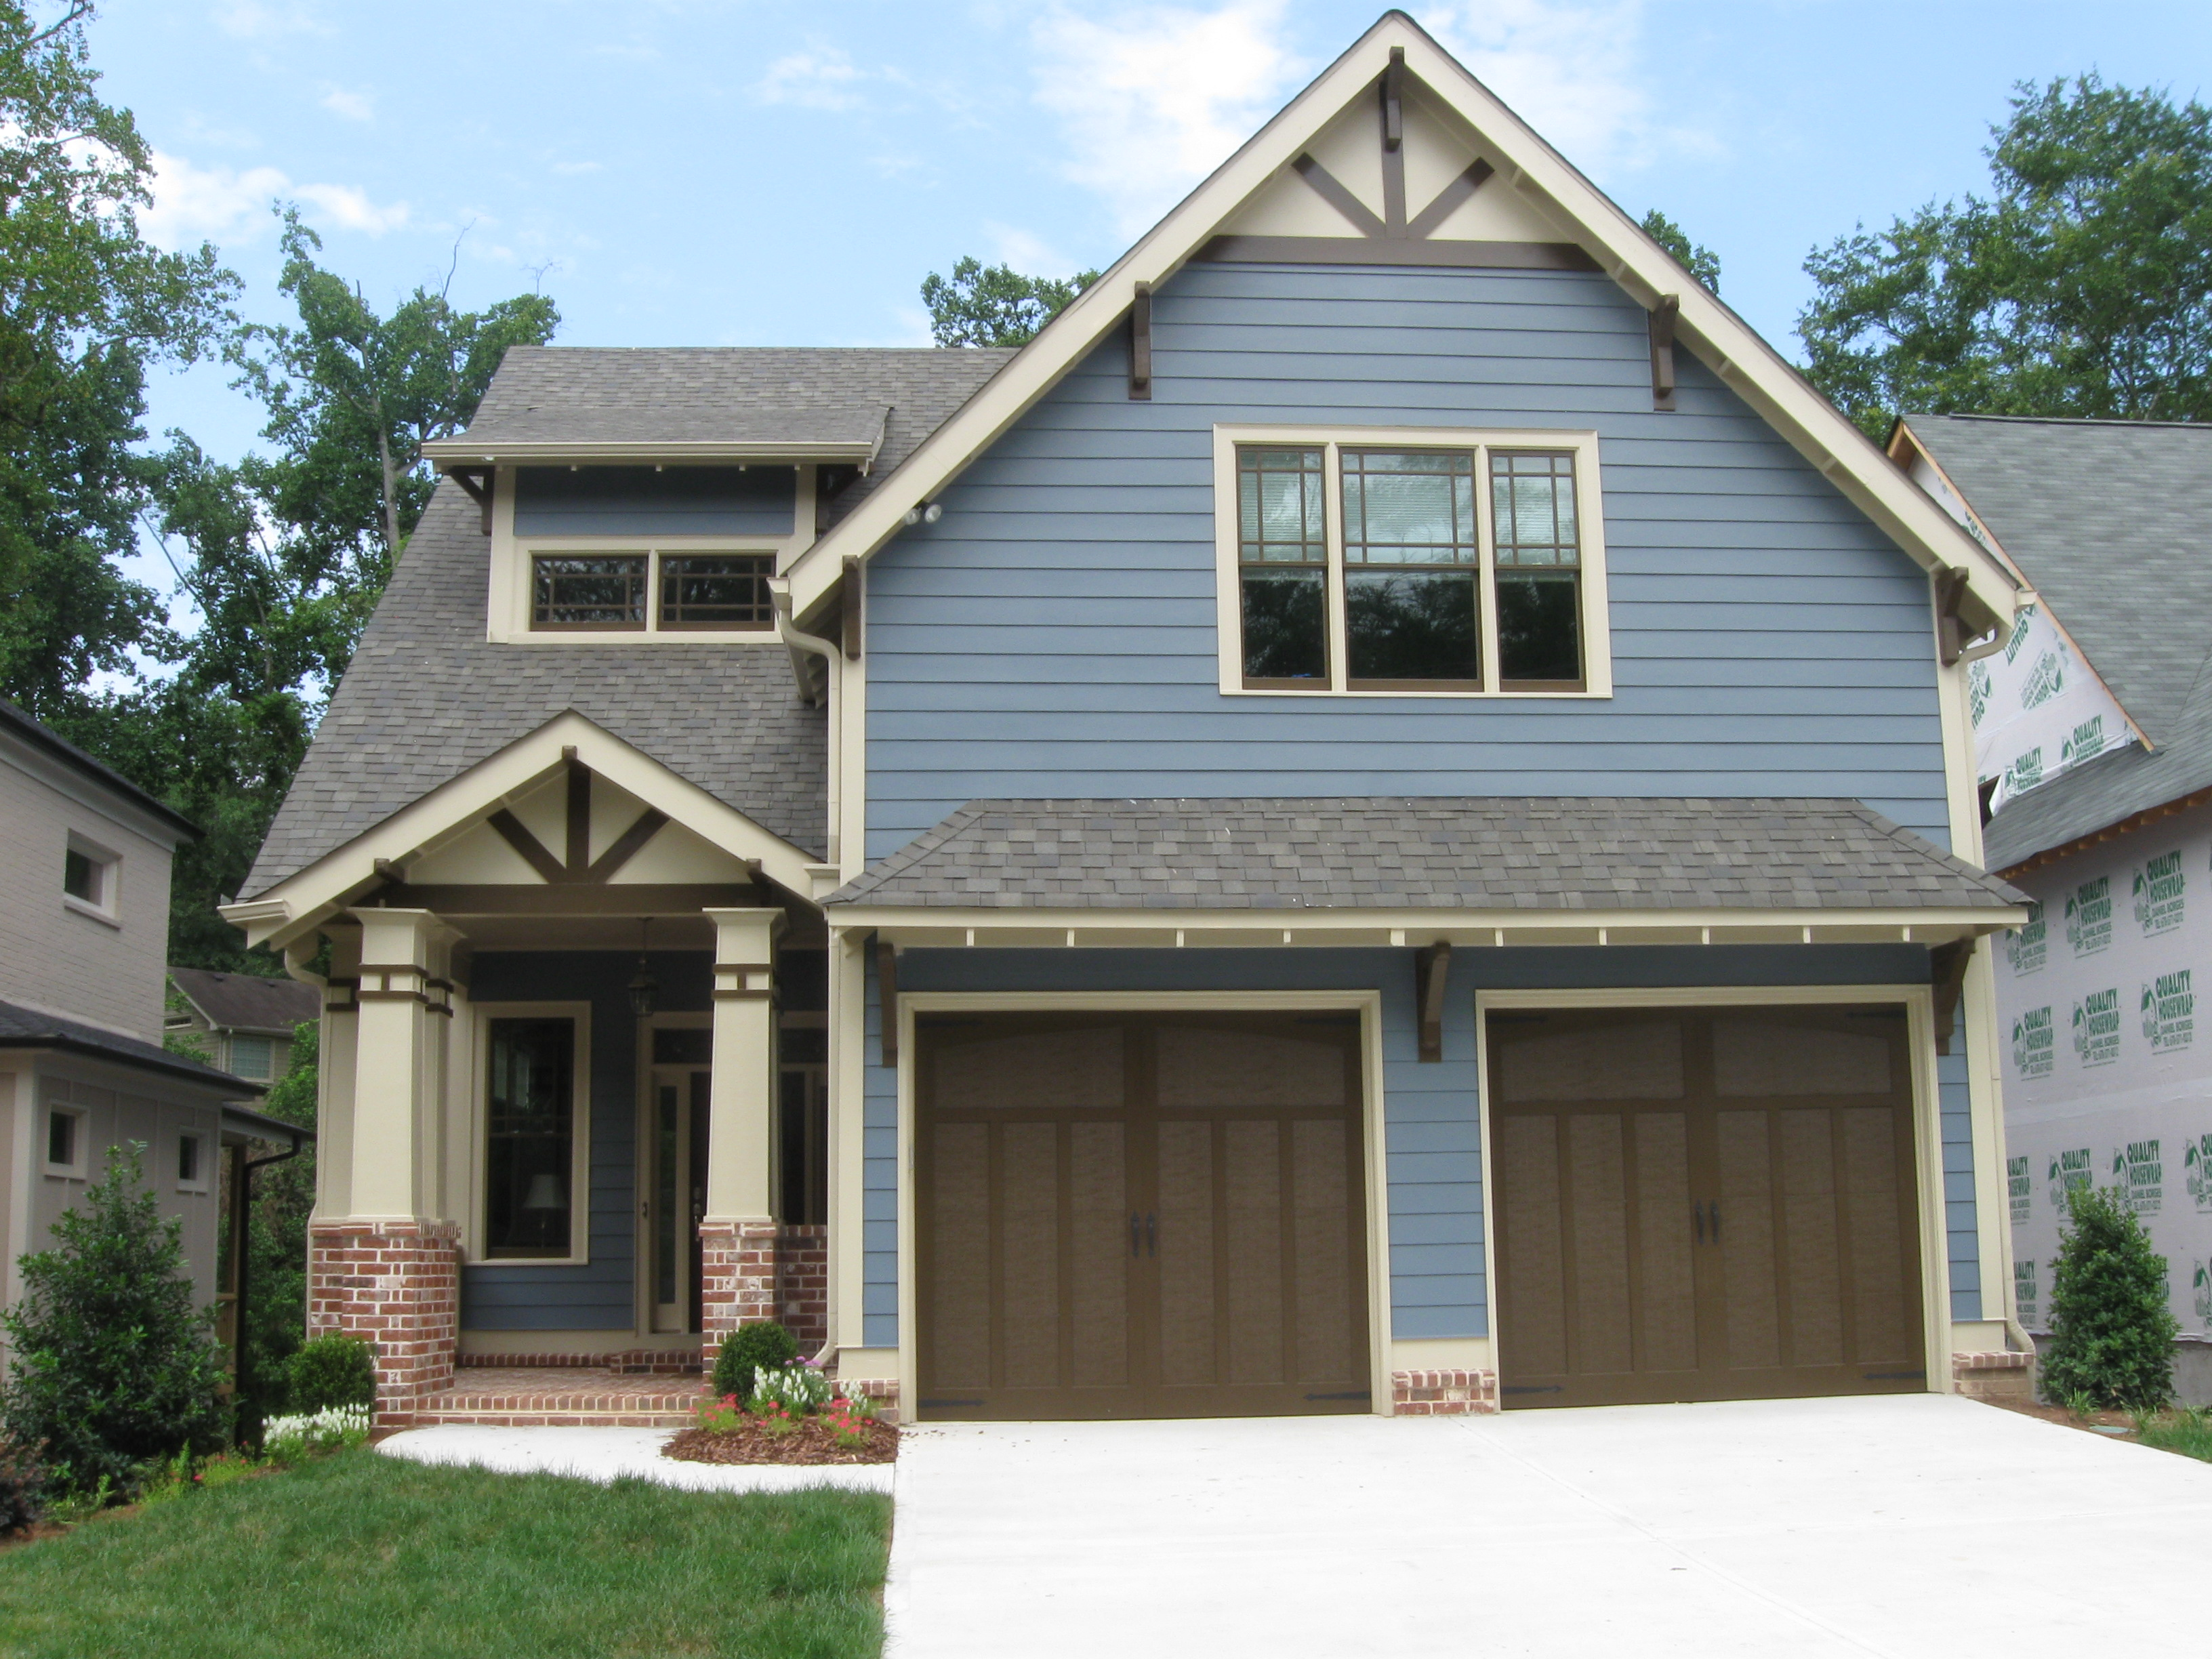 Best Exterior Paint Finish cedar shake idea for upper part of house lisa mende design best navy blue paint colors 8 of my favs Titan Painting A Job From Start To Finish